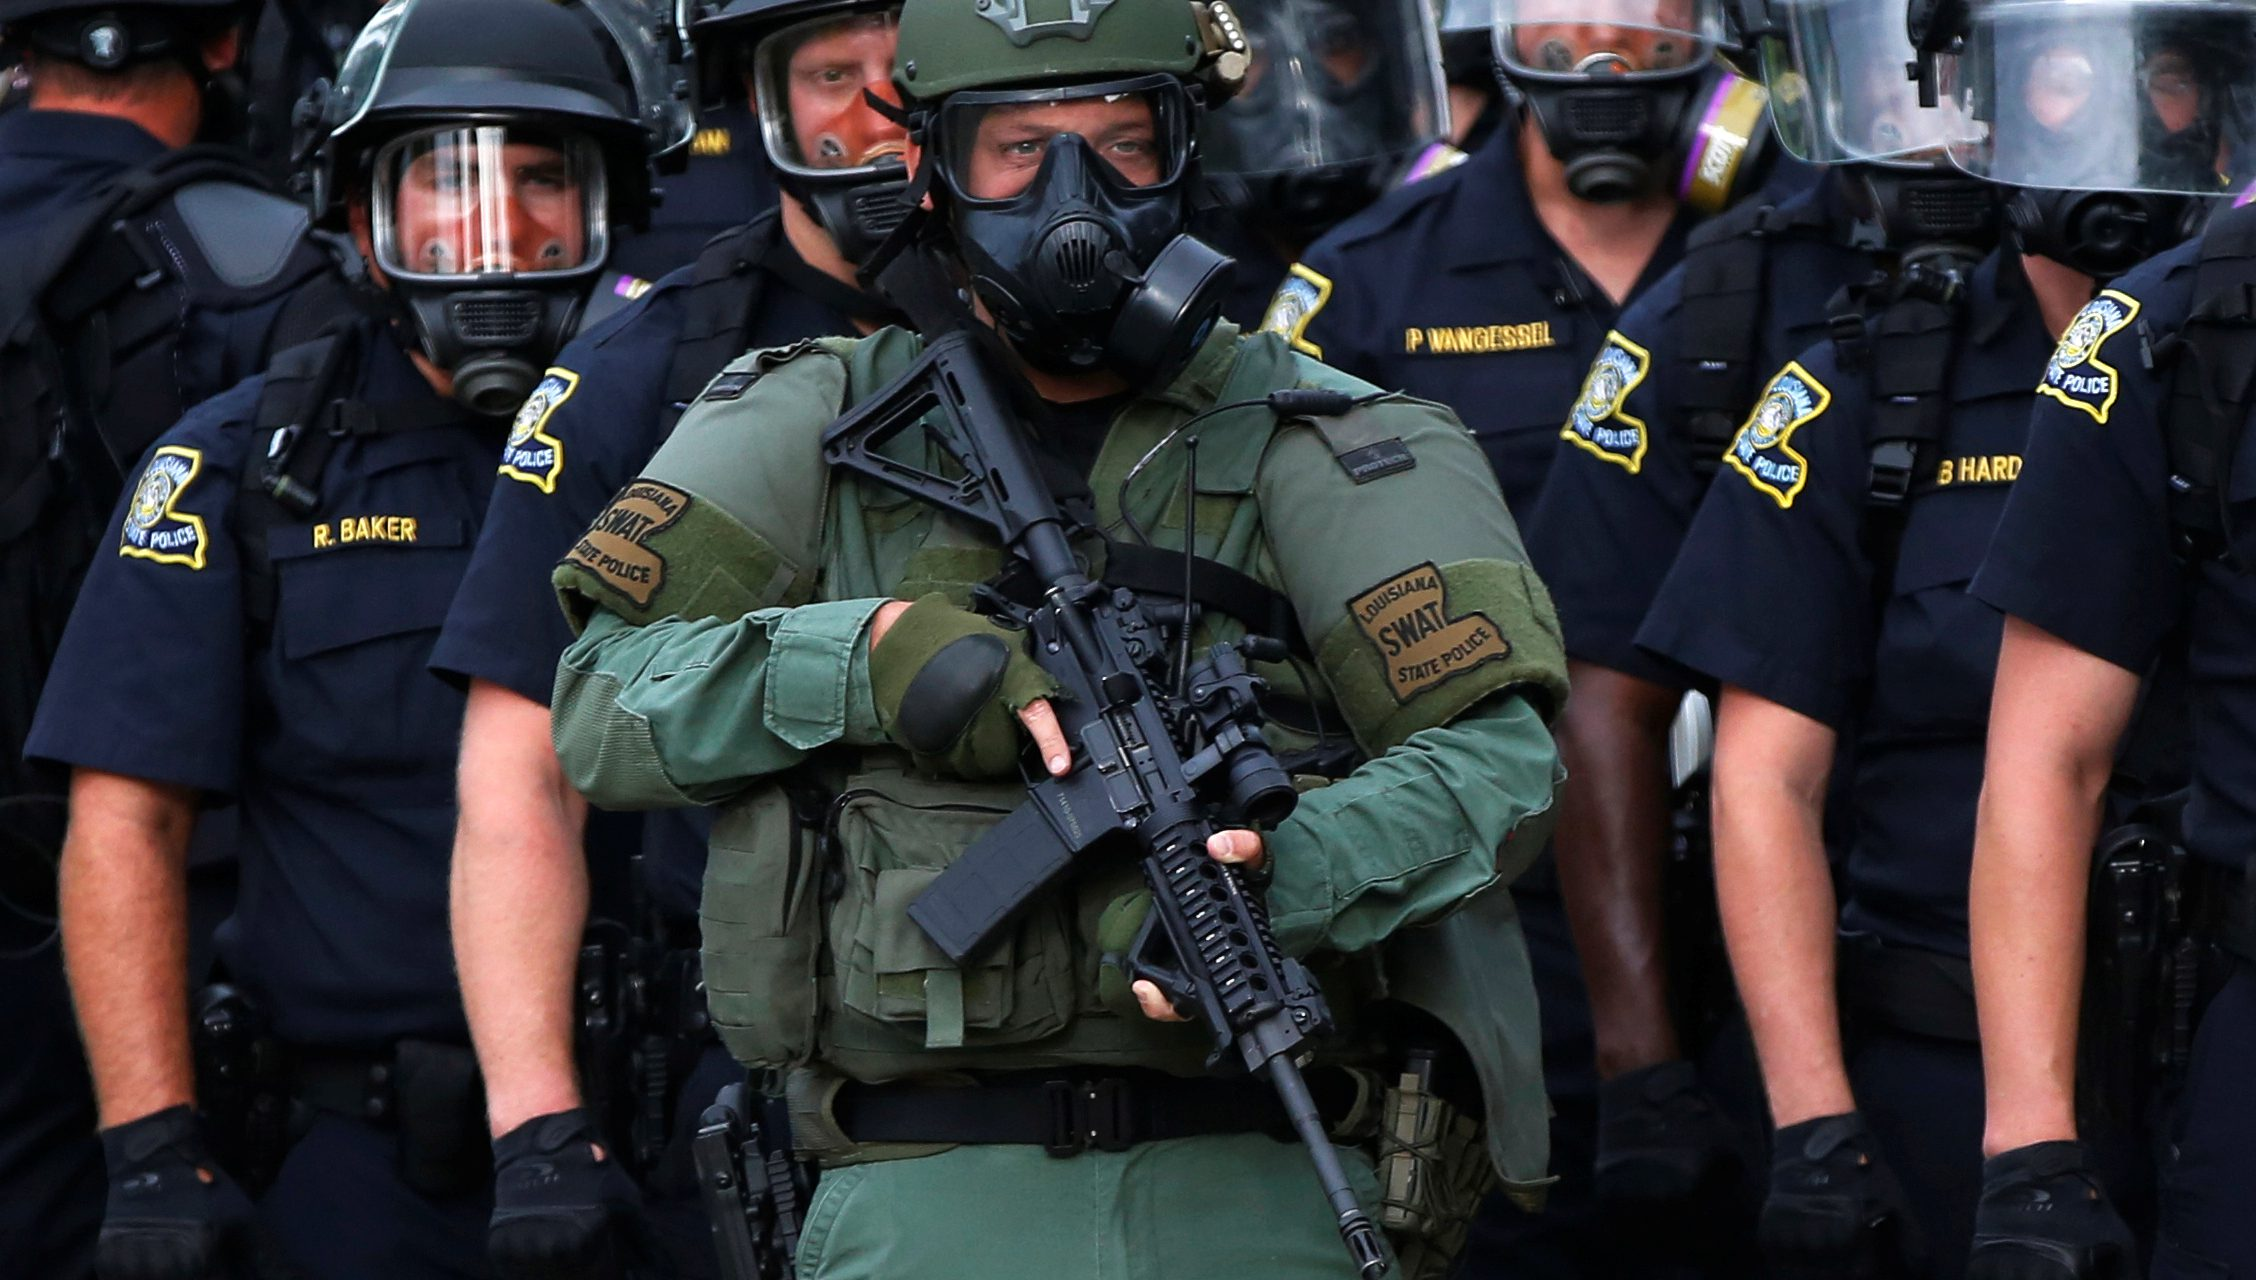 Why do American police officers dress like soldiers, and does it